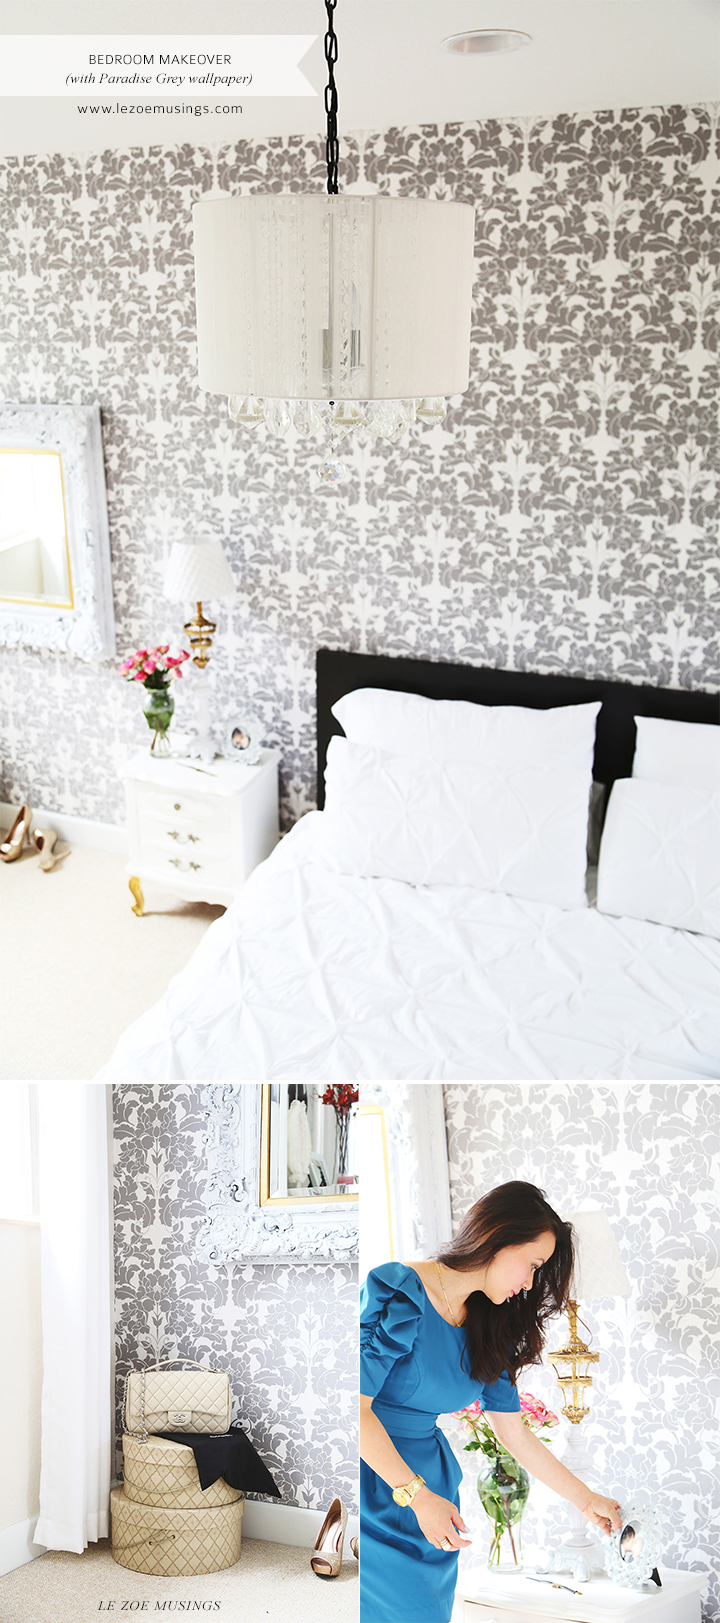 Bedroom Makeover with Wallpaper by Le Zoe Musings2